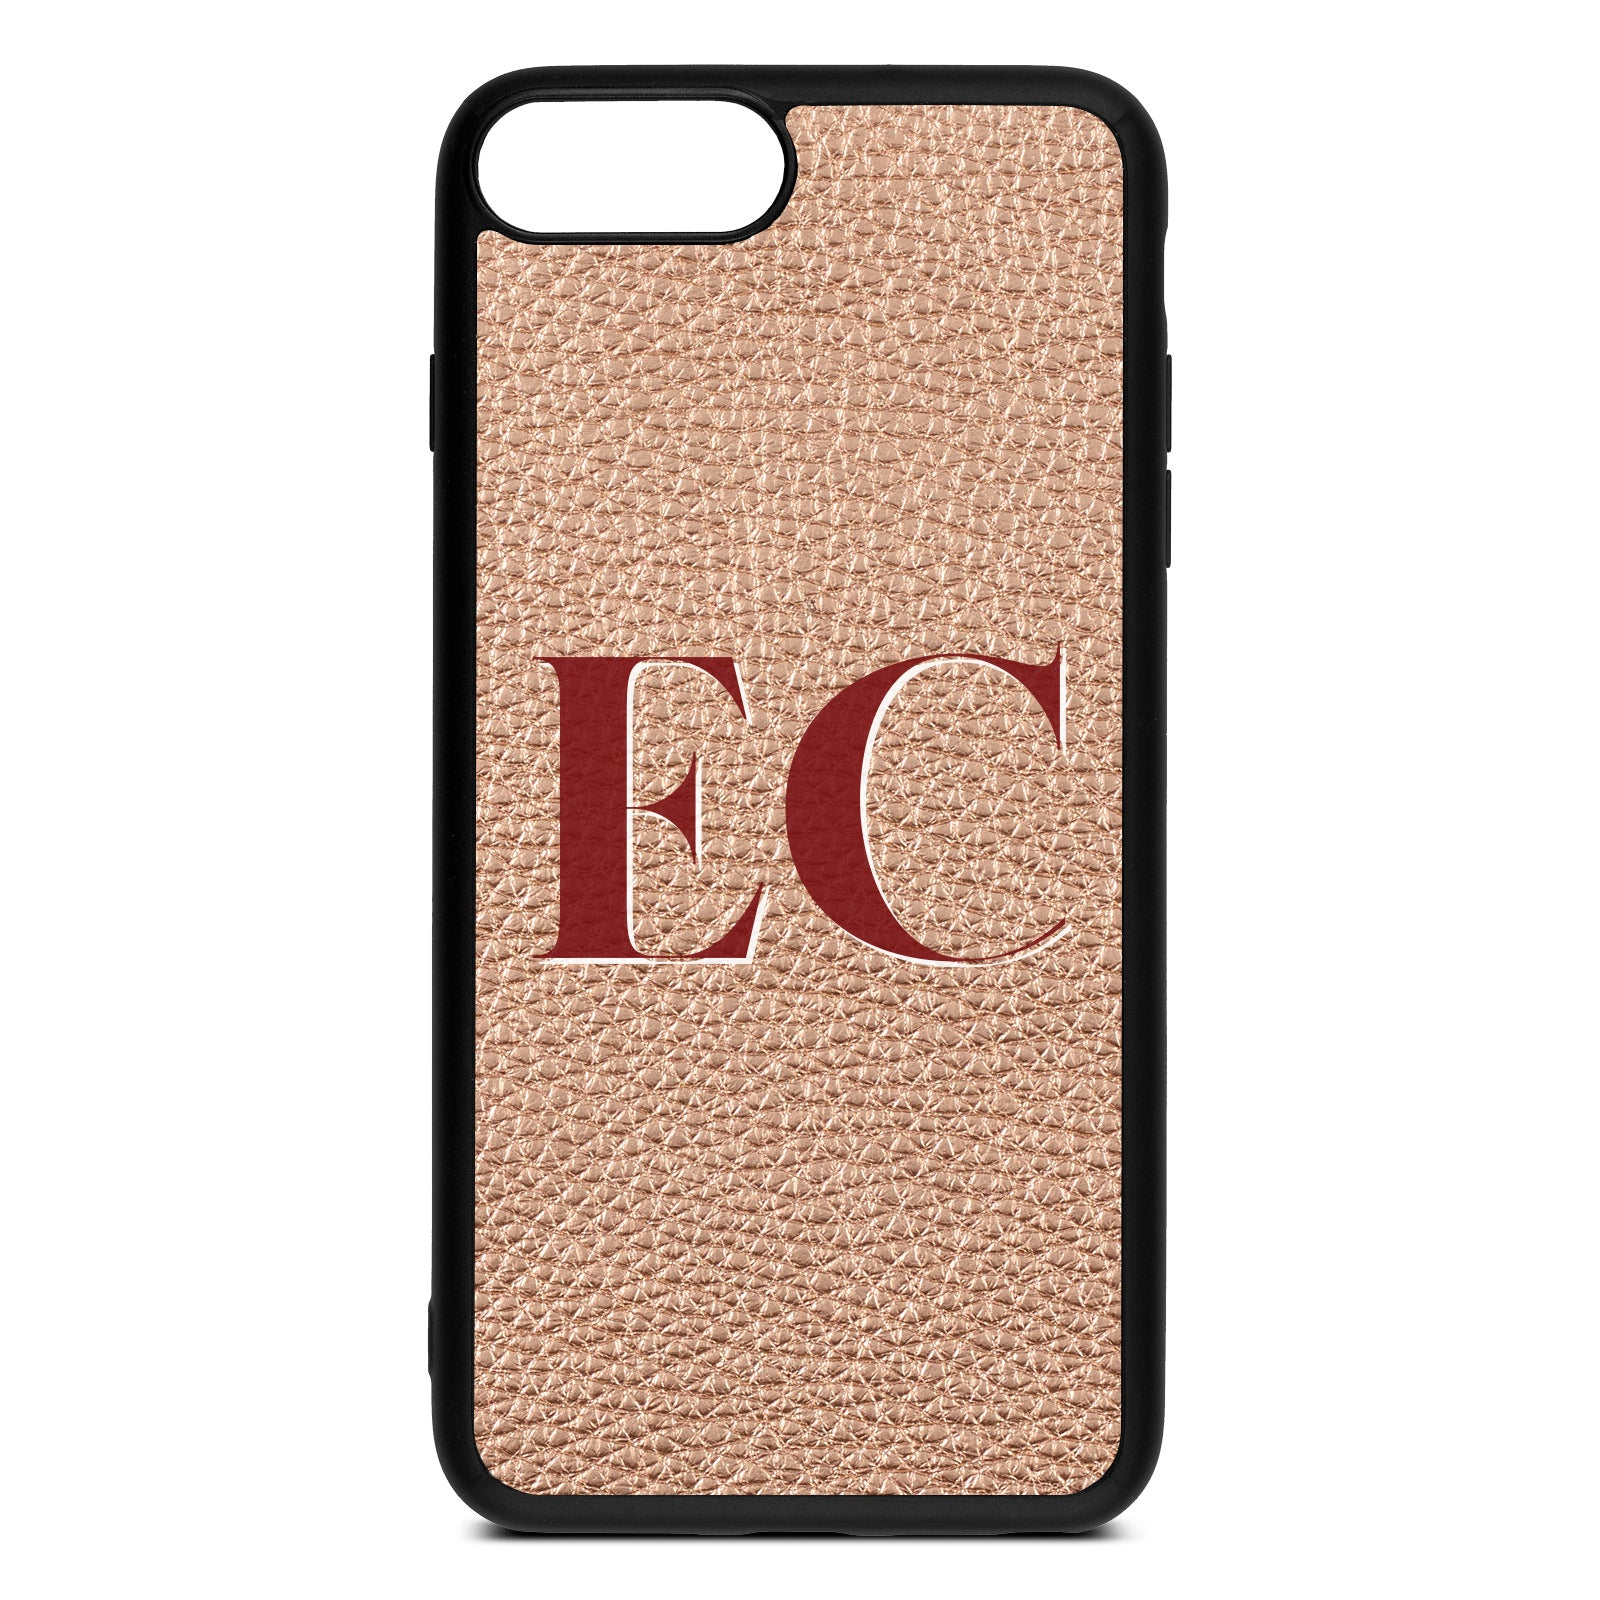 iPhone 8 Plus Rose Gold Pebble Leather Case